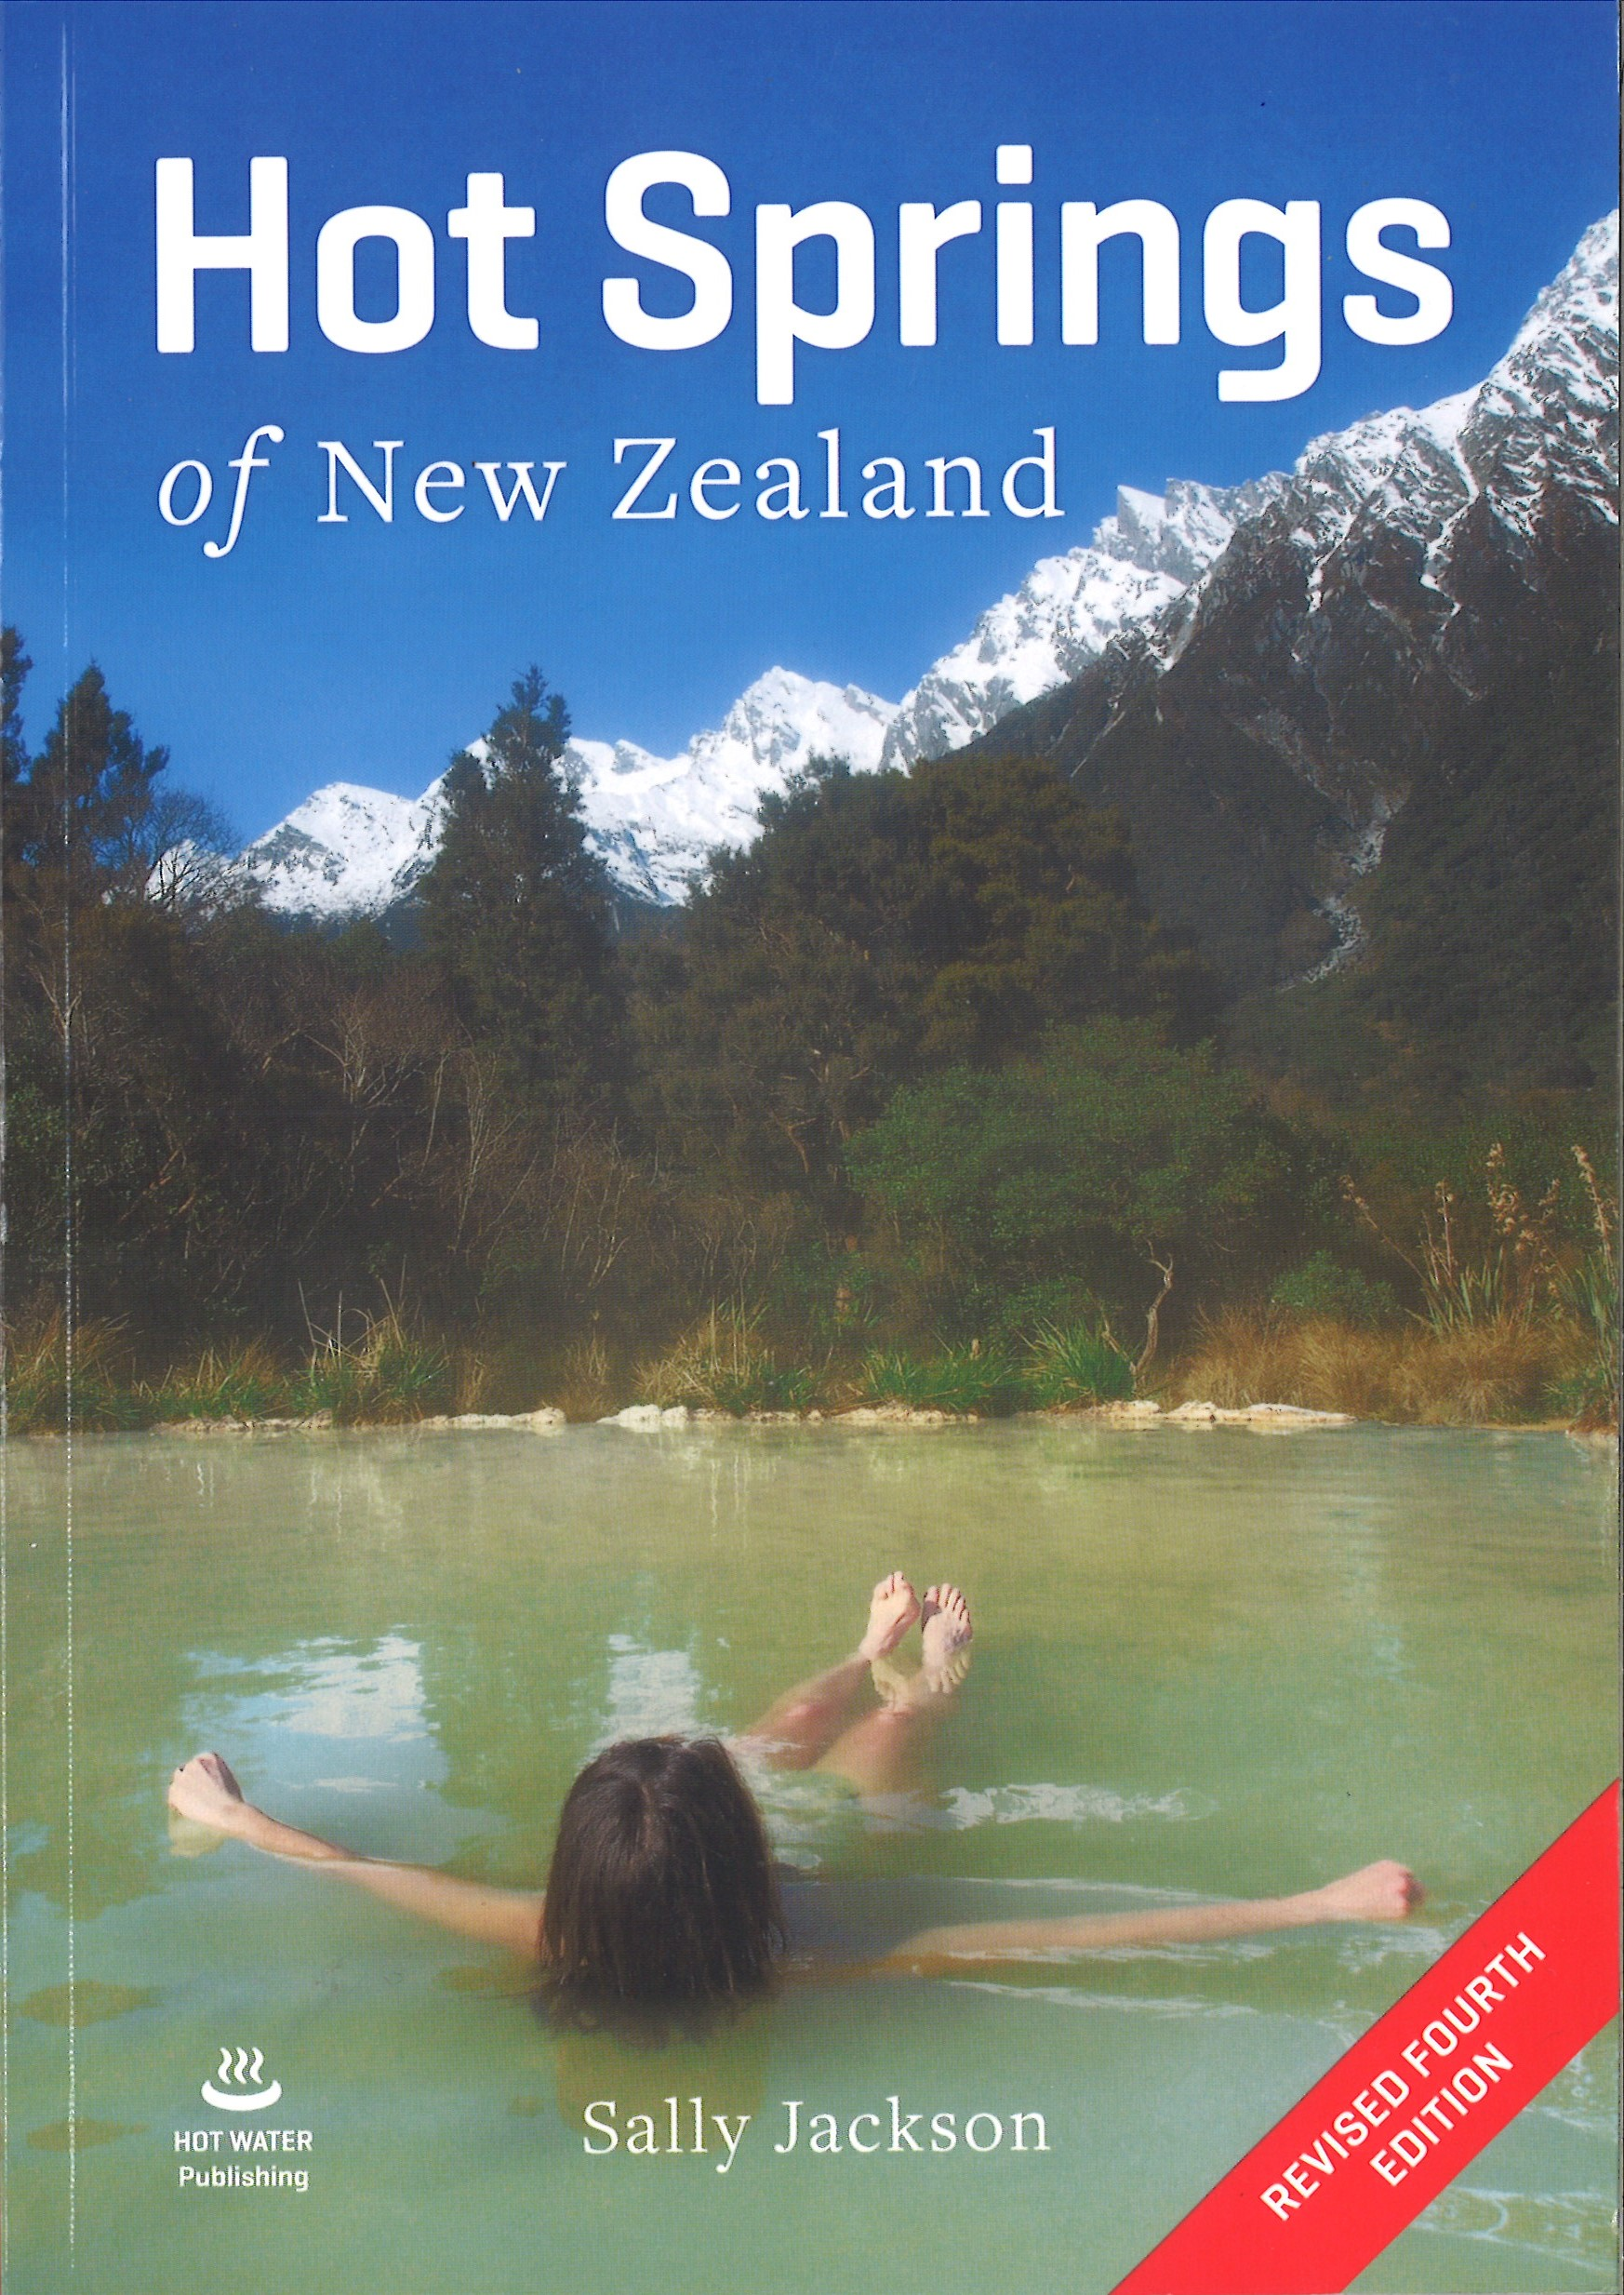 Hot Springs of New Zealand by Sally Jackson